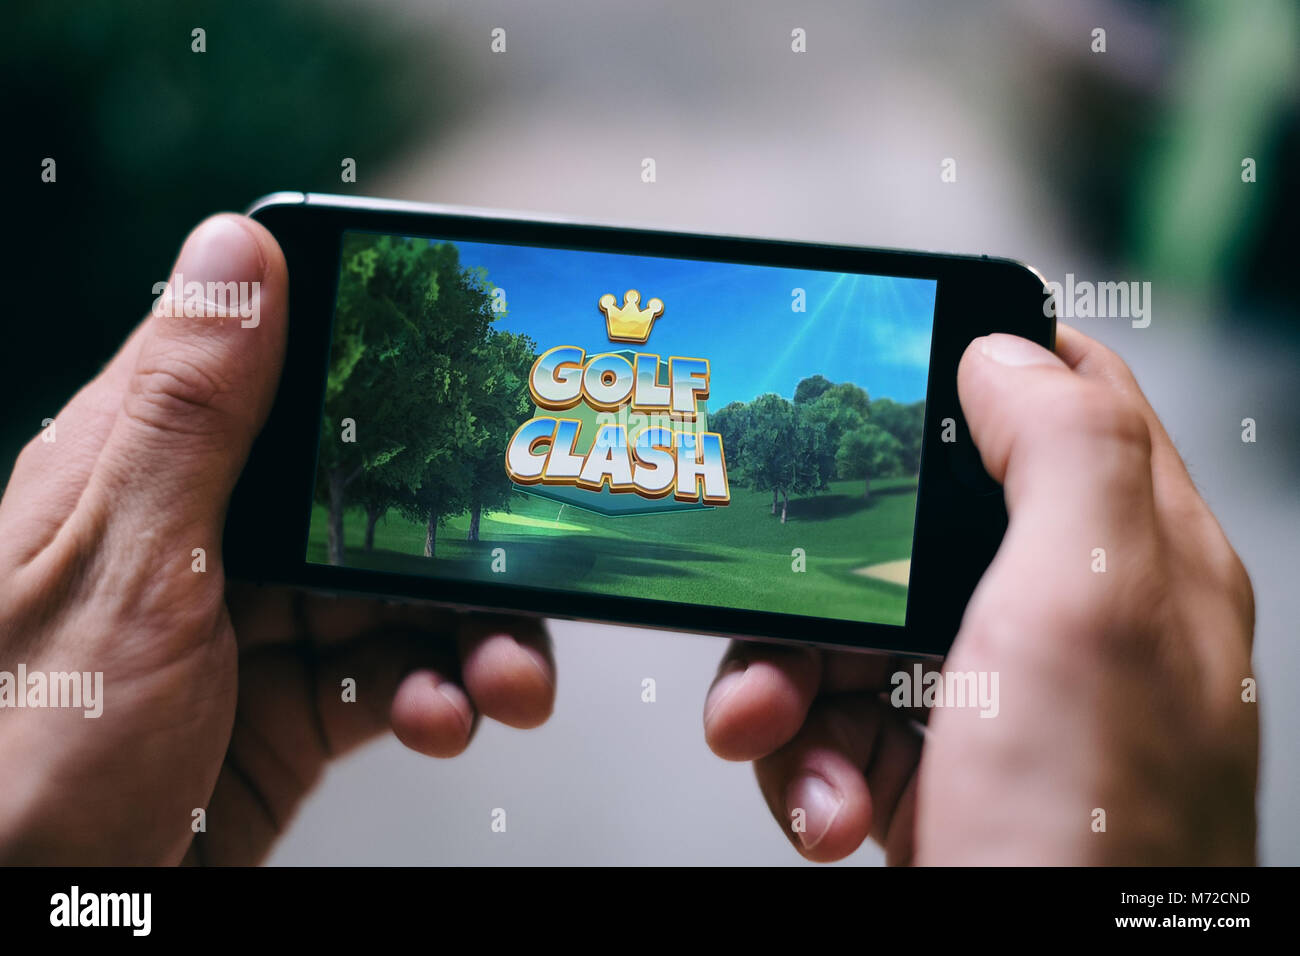 Golf Clash App Game played on Apple iPhone - Stock Image